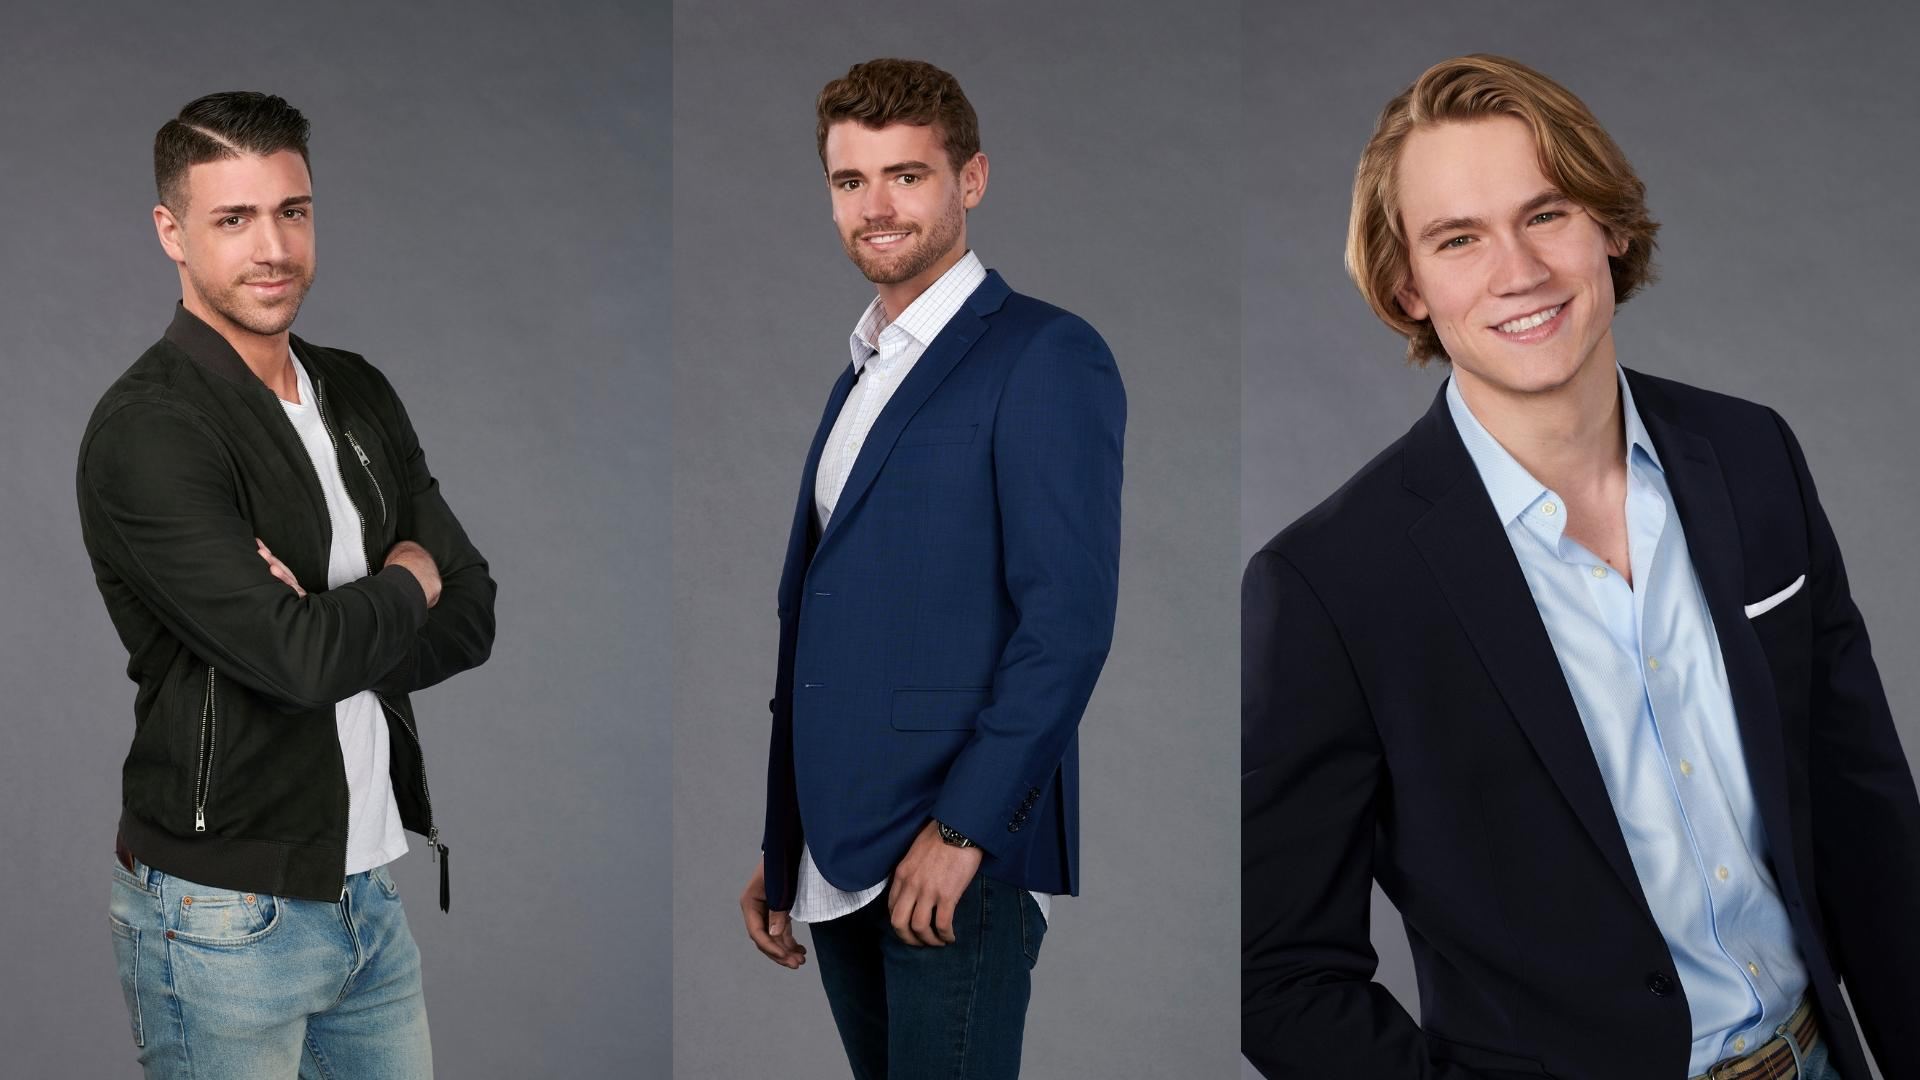 We've already introduced you to the 30 handsome gents who will be vying for Hannah's heart this season, but for the first time ever, we get to cheer on not one, but THREE local guys on Hannah's season. So without further ado... (Images: ABC/Ed Herrera)